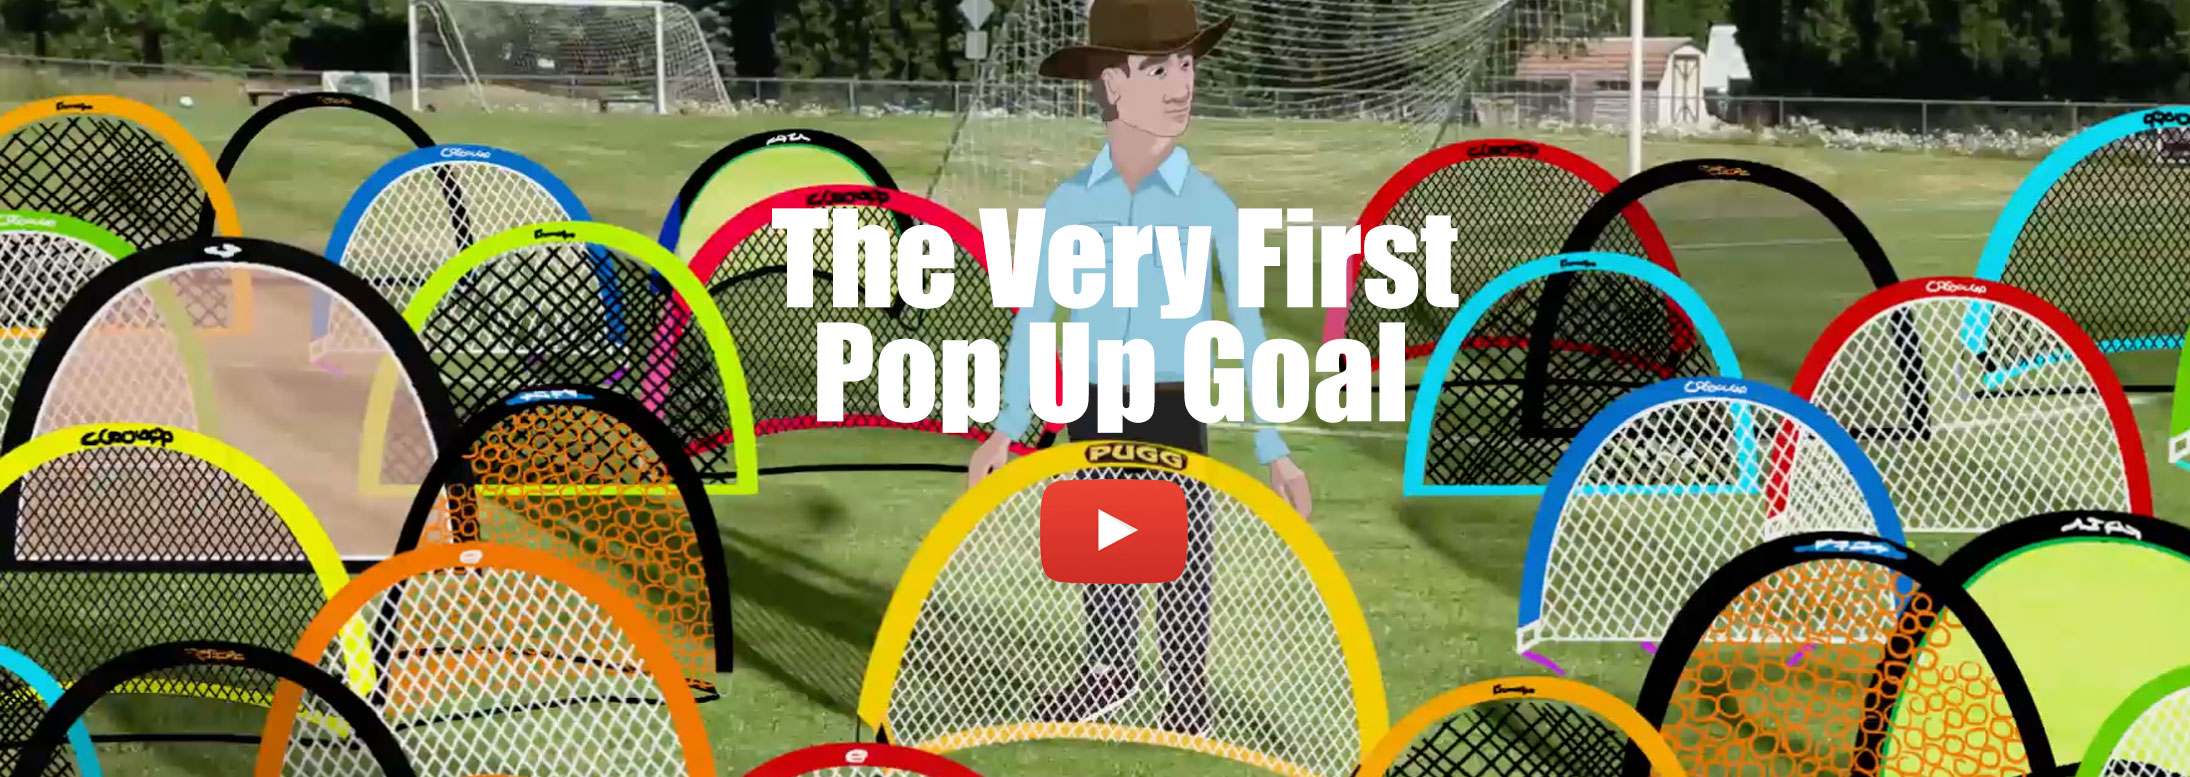 Pugg: The Very First Pop Up Goal